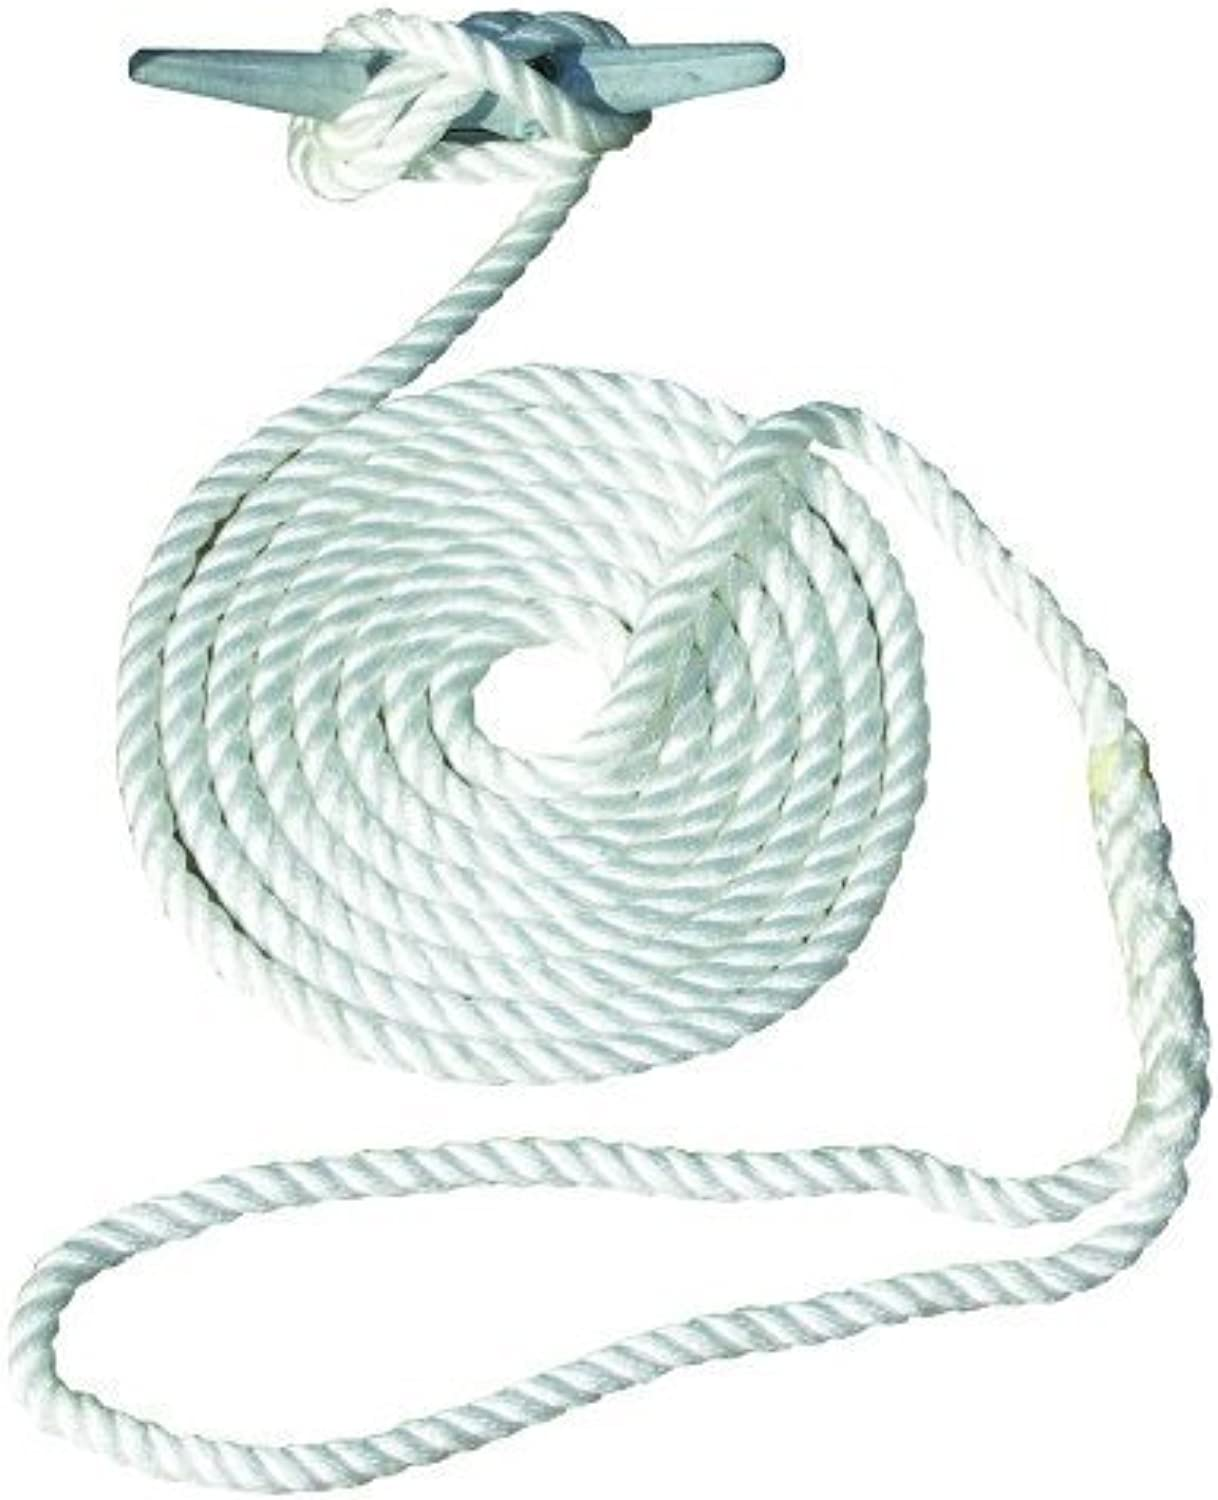 Invincible Marine 15-Foot Hand Spliced Nylon Dock Line, 1 2-inches by 15-Feet, Weiß by Invincible Marineblau